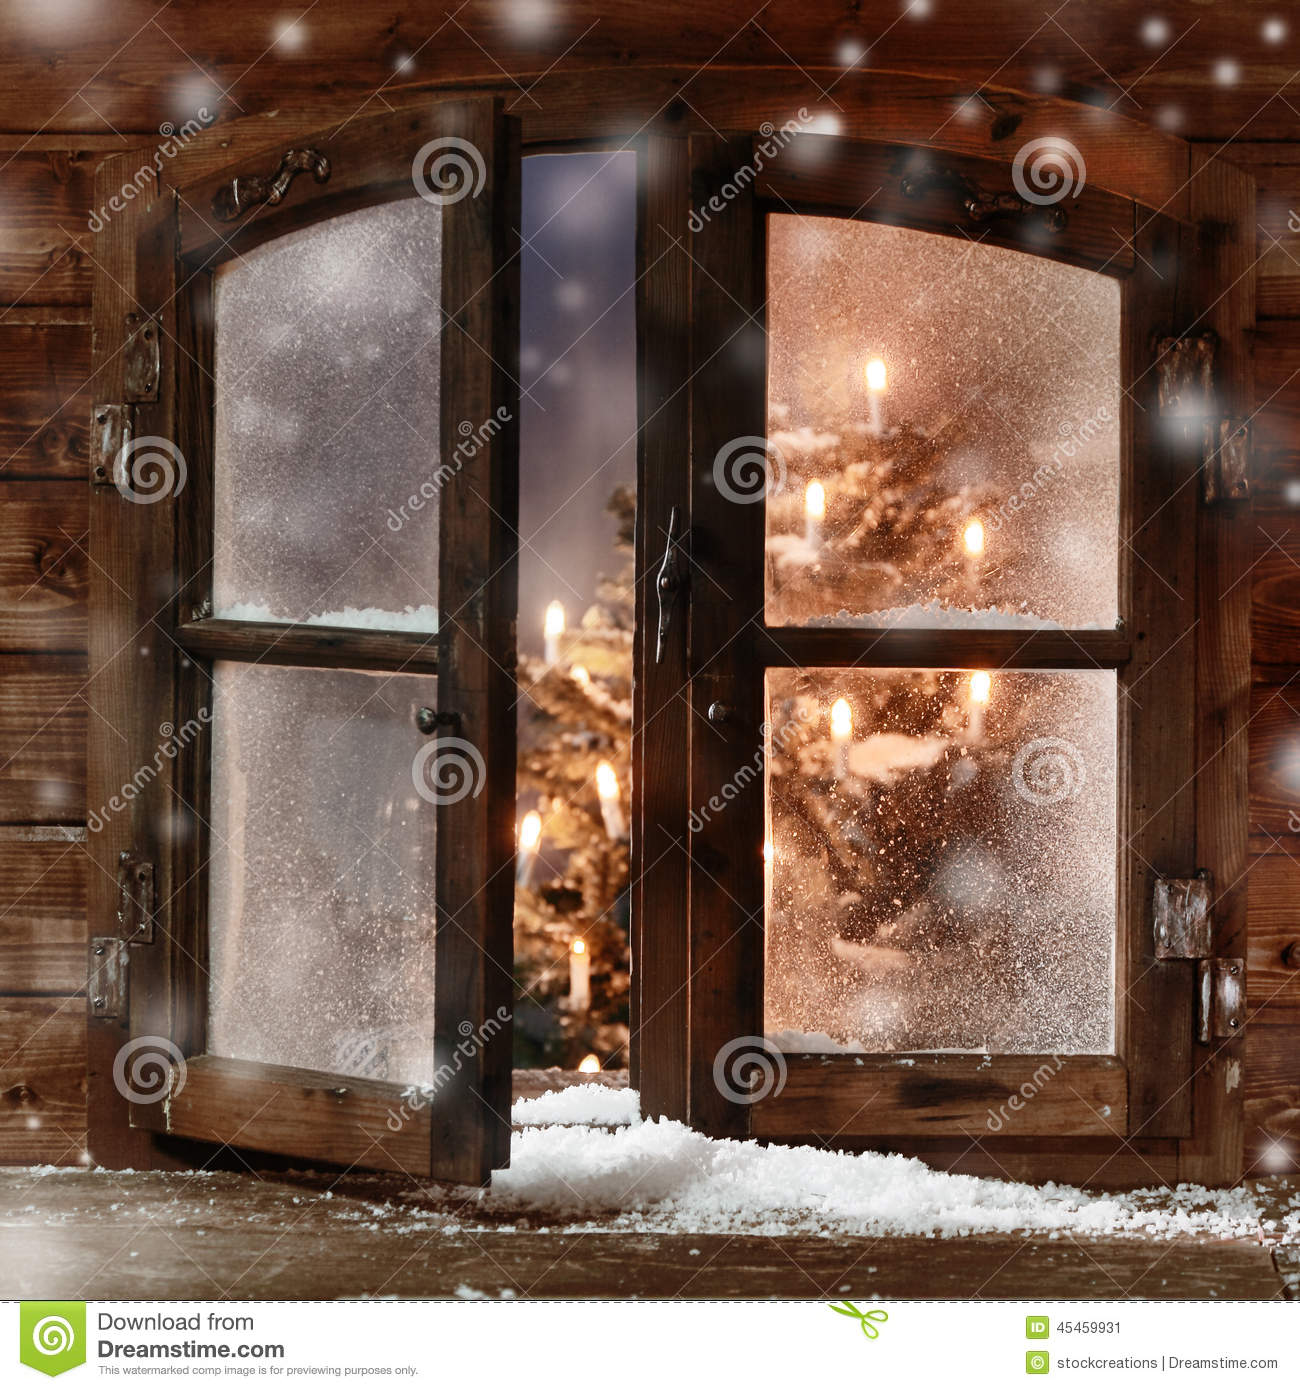 Snow On Vintage Wooden Christmas Window Pane Stock Image